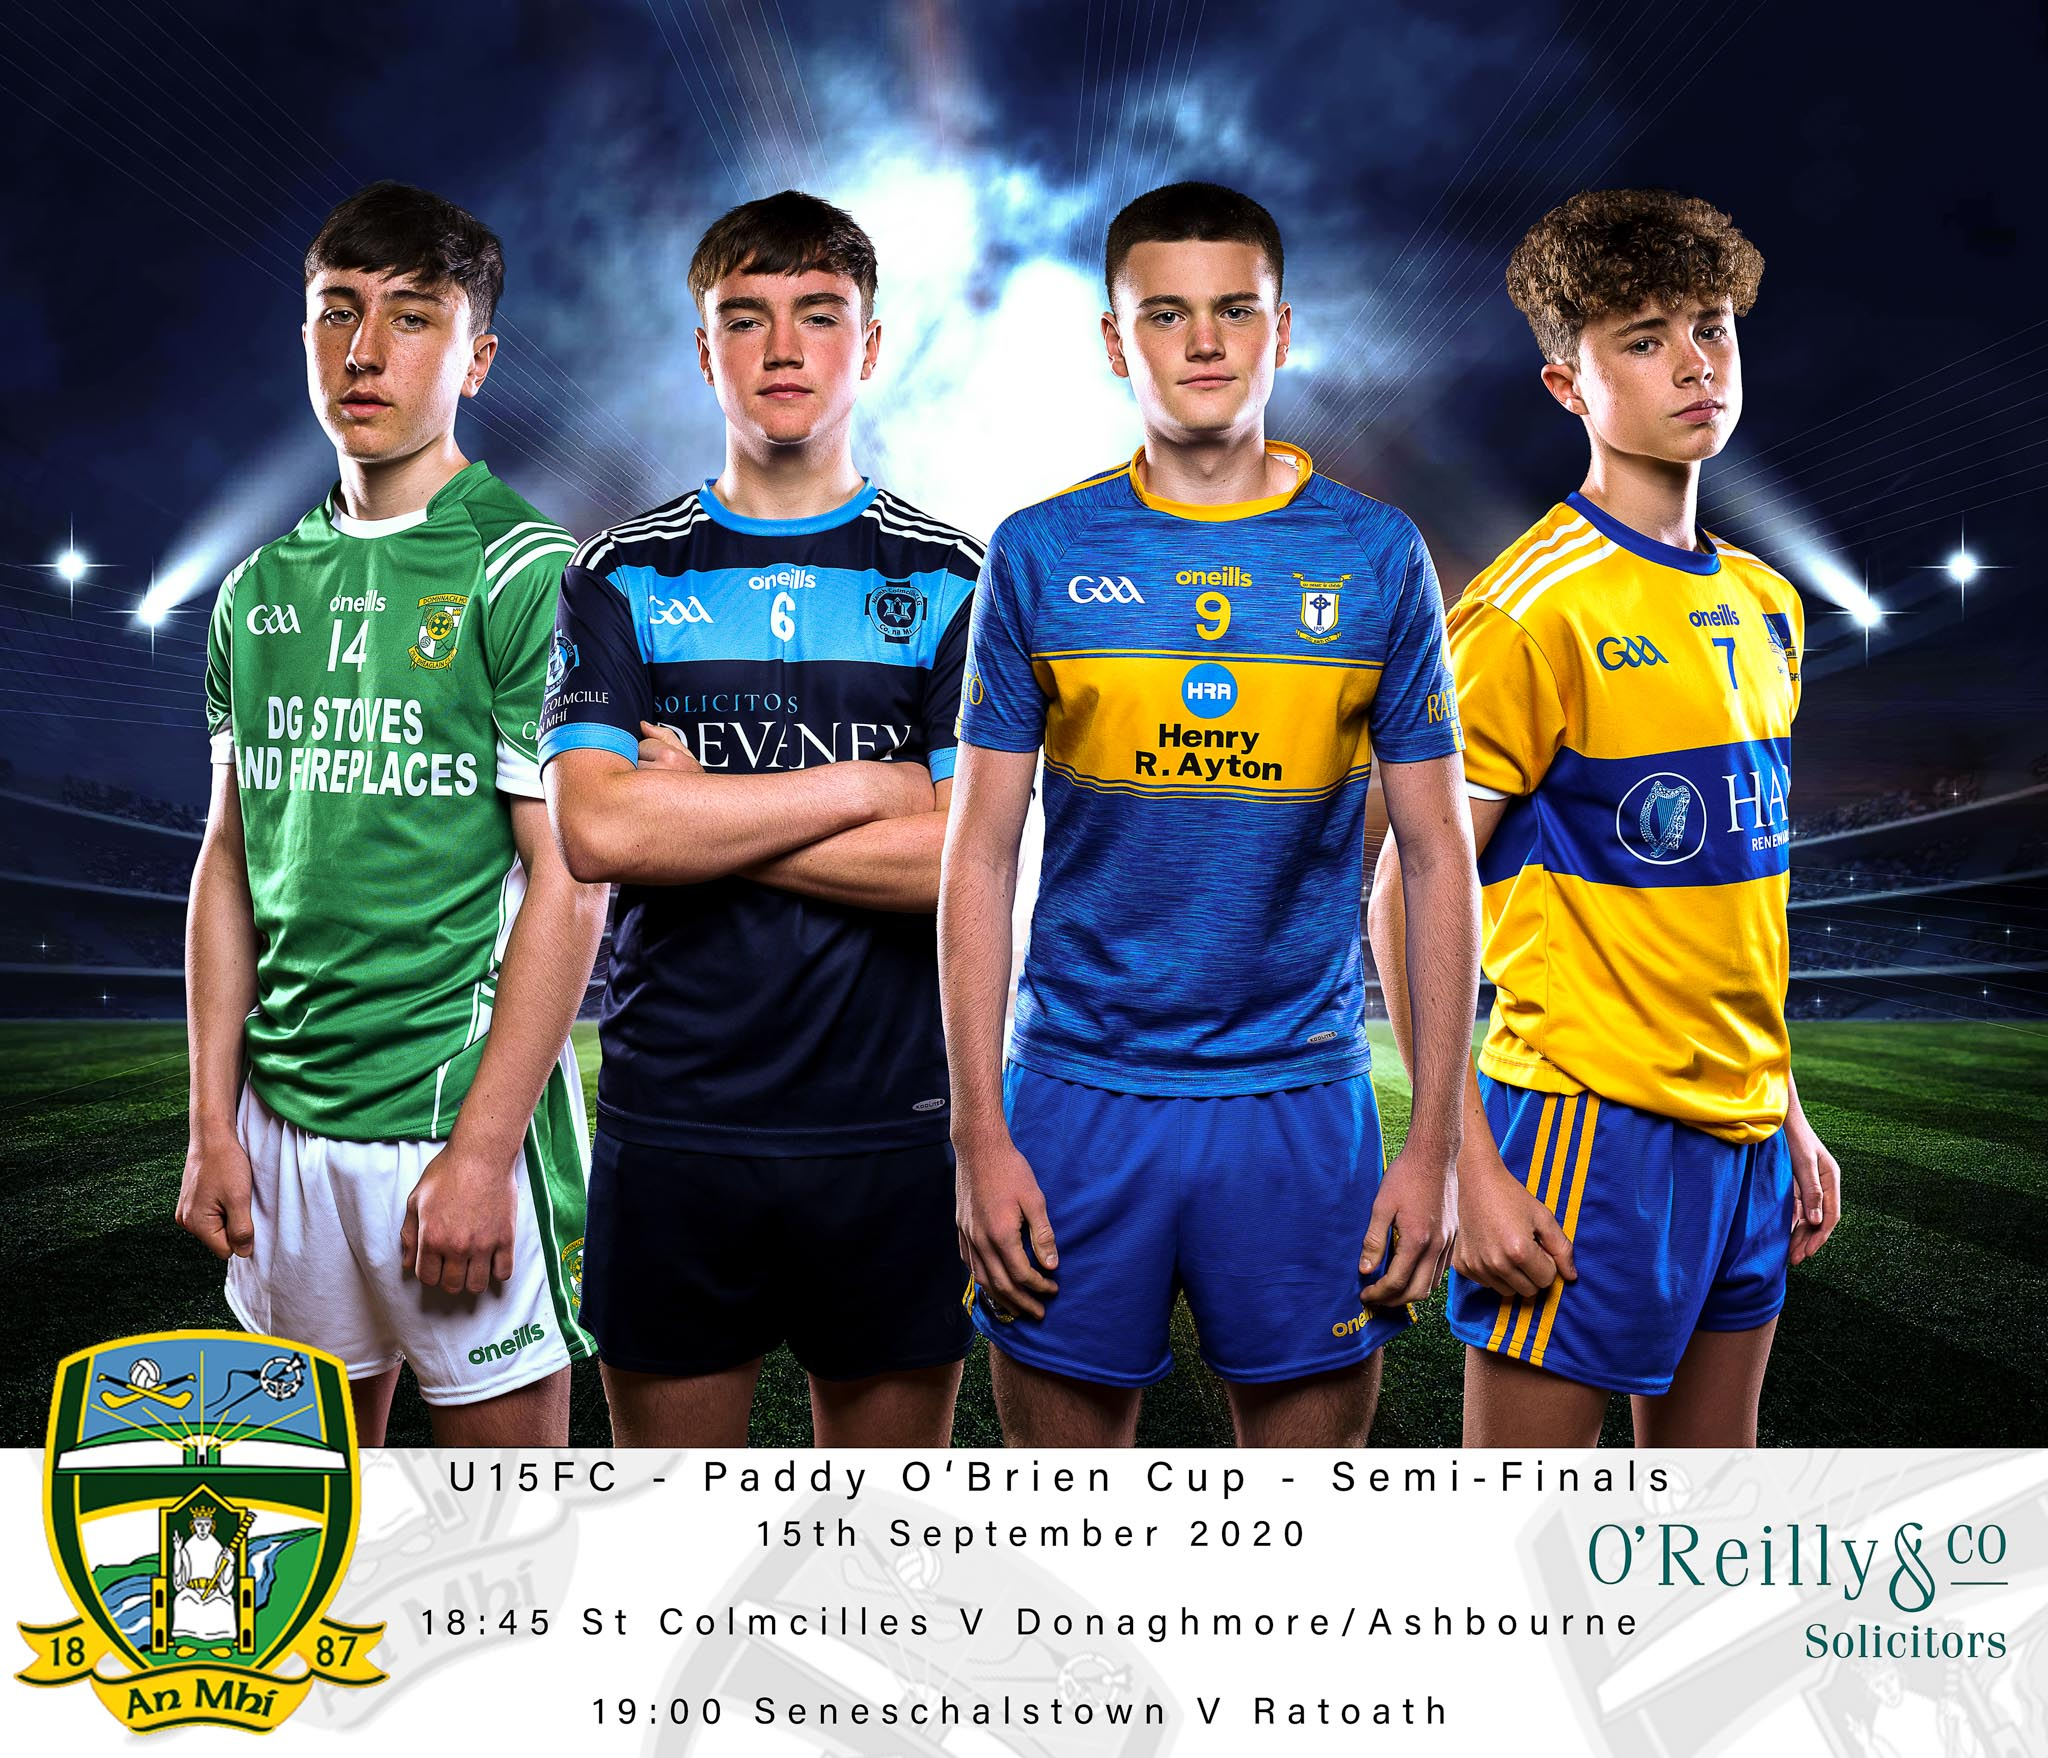 O'Reilly & Co. Solicitors U-15 Football Championship – Paddy O'Brien Cup Division 1 semi-finals